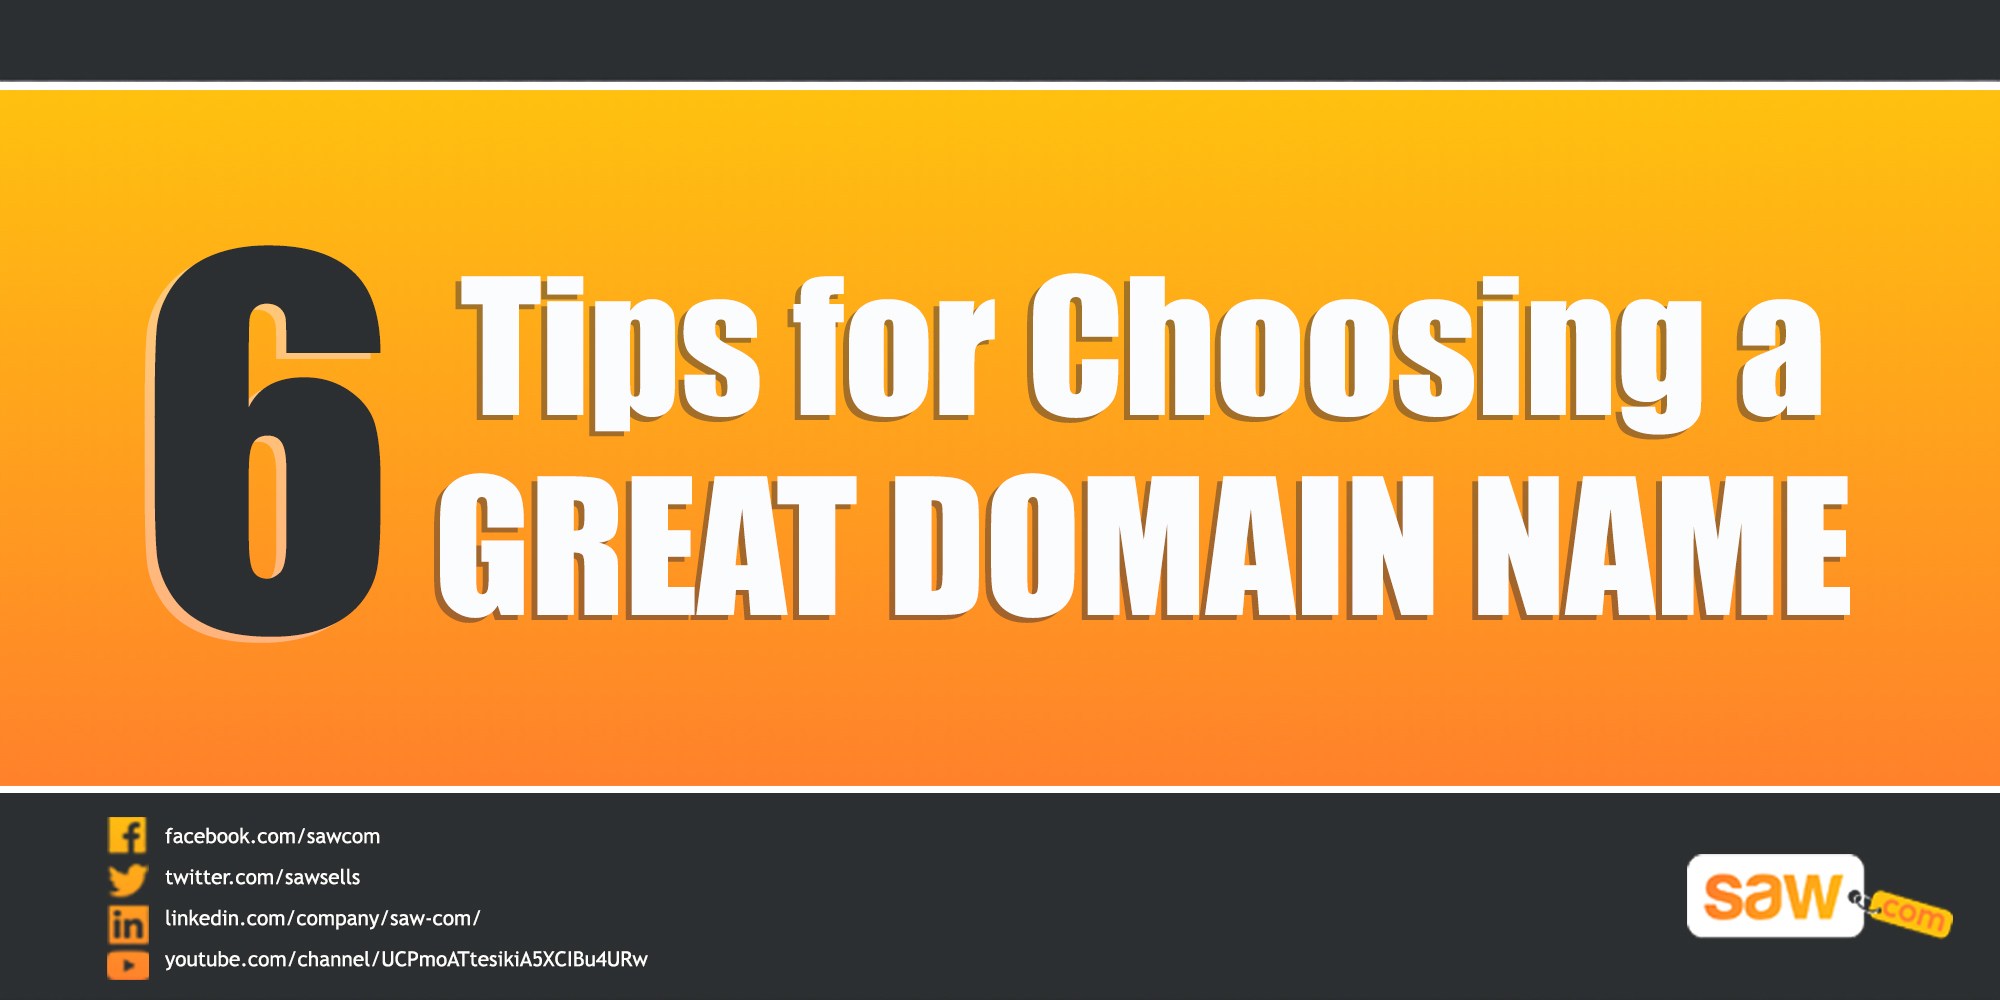 6 Tips for Choosing a Great Domain Name